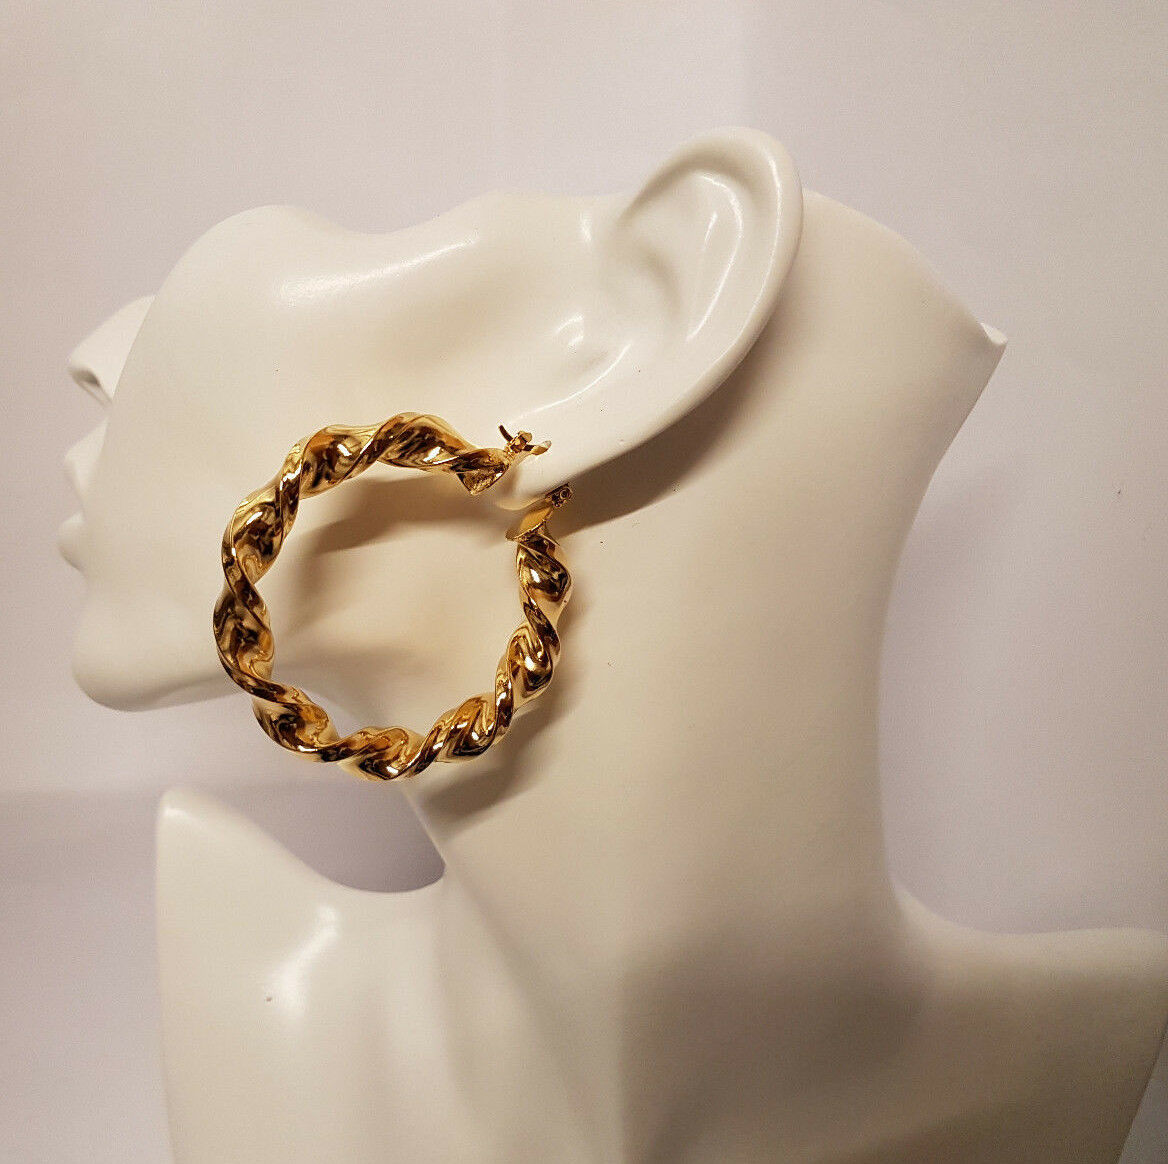 Details zu Twisted Large Big 9ct Gold Plated Hoop Earrings Large Circle Creole Chic Hoops